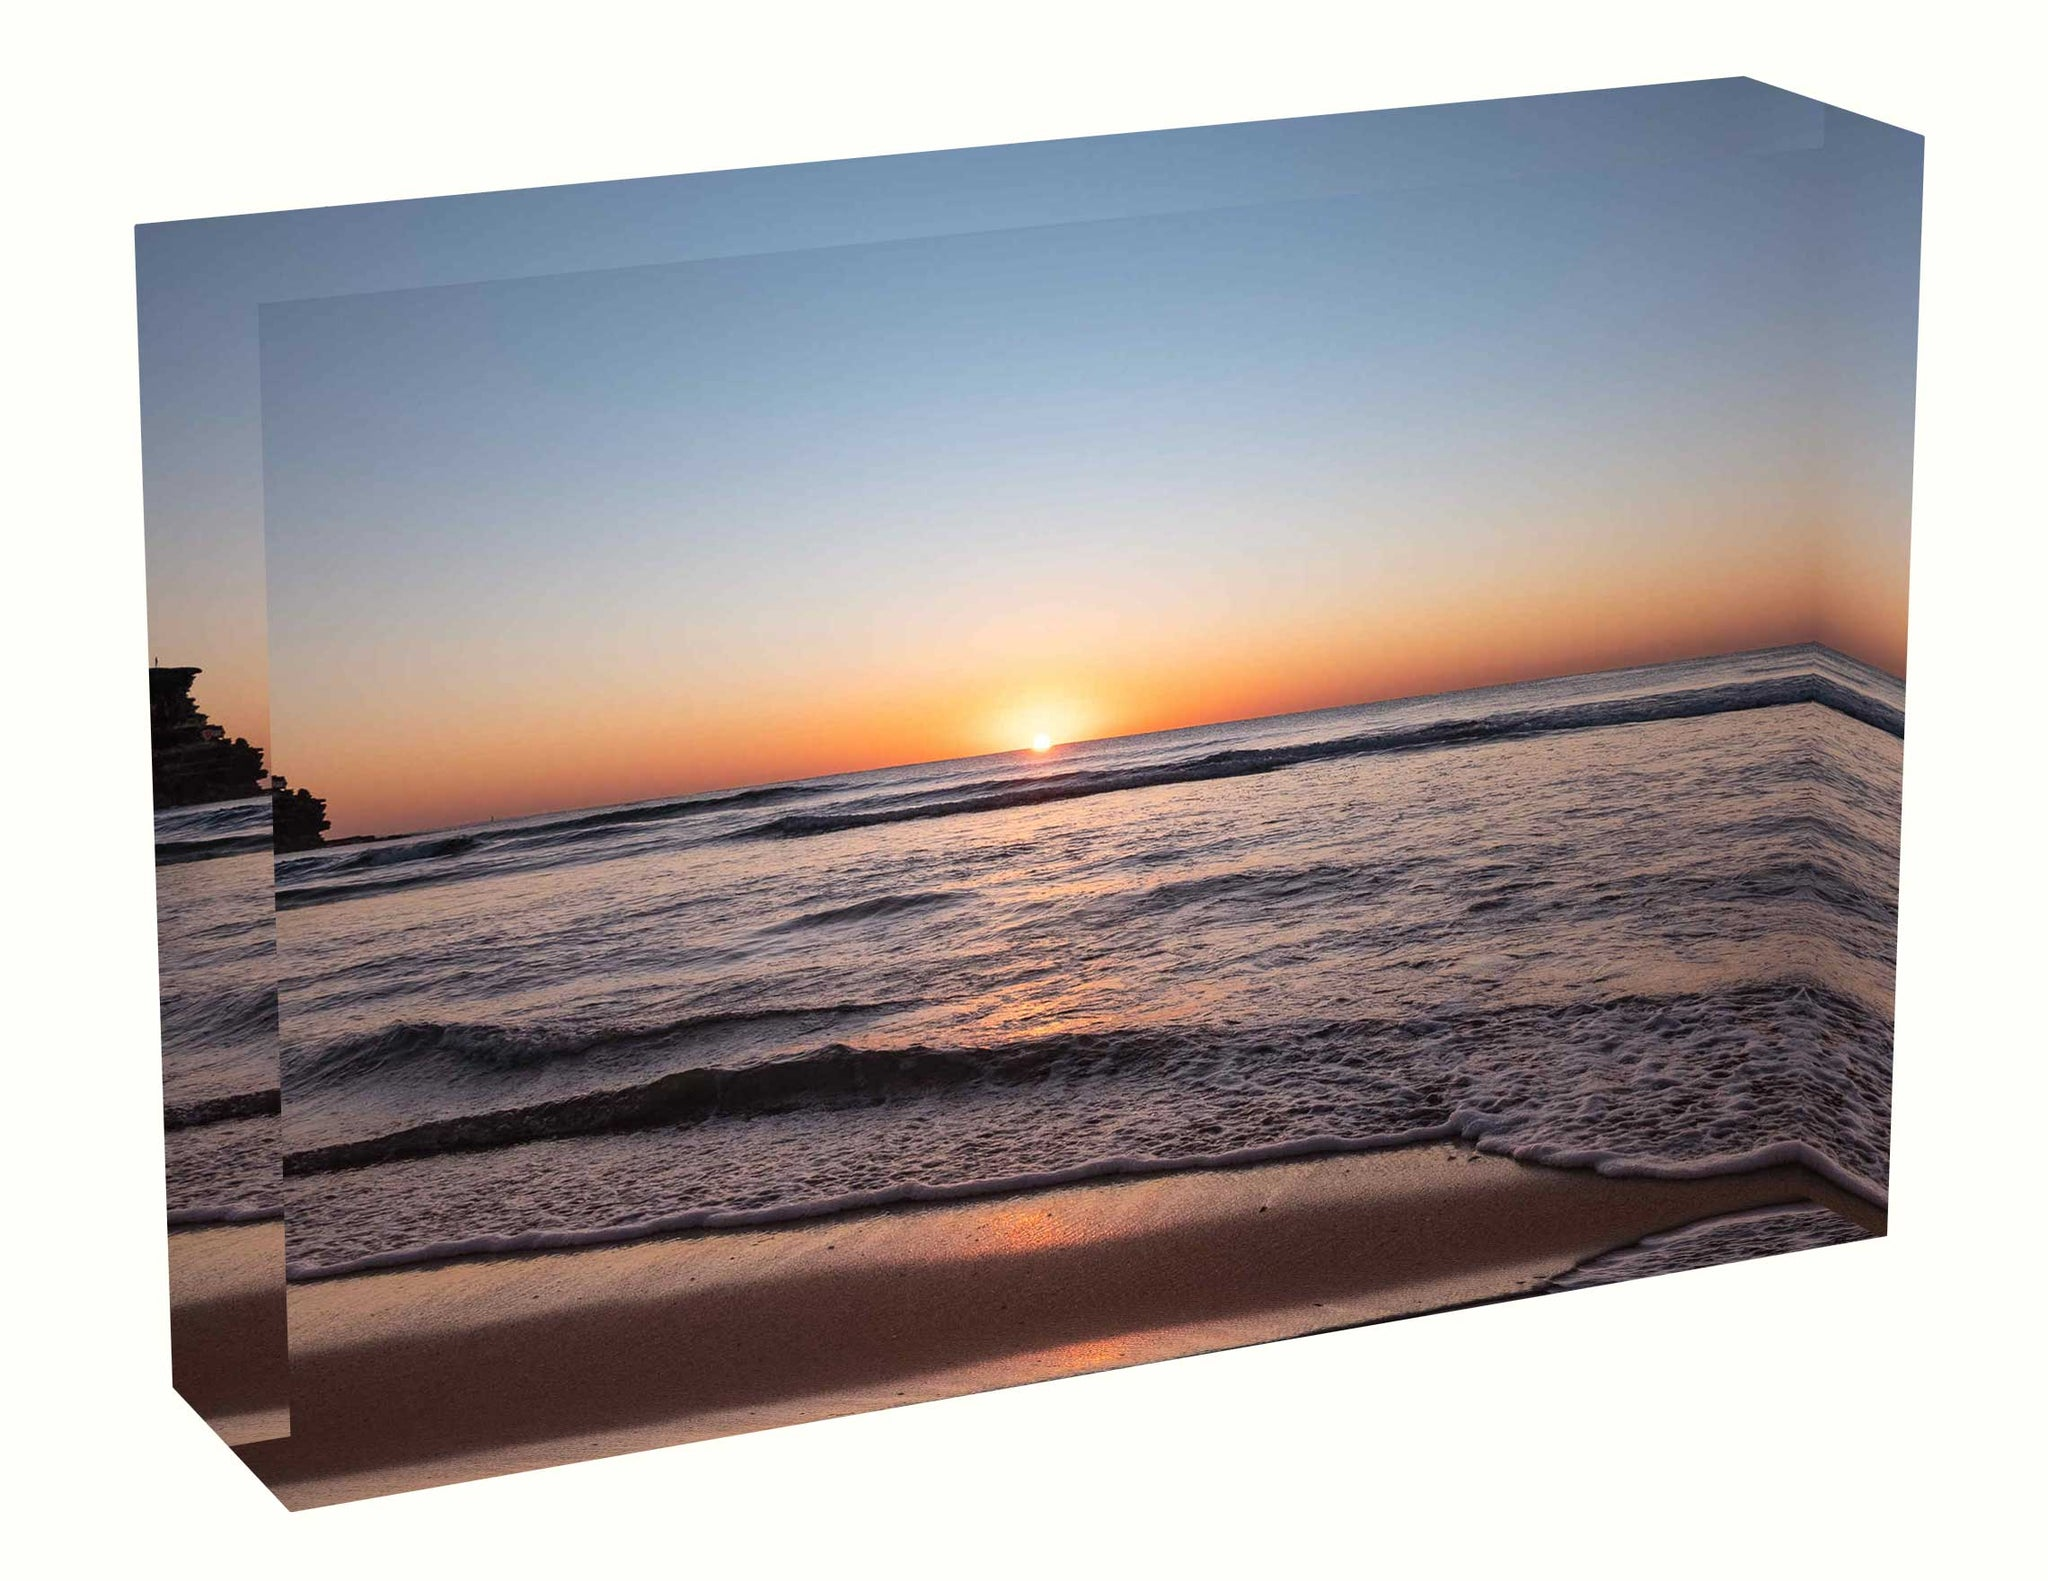 Acrylic block Sunrise photo from the 25th April 2020 at Queenscliff Beach, Sydney